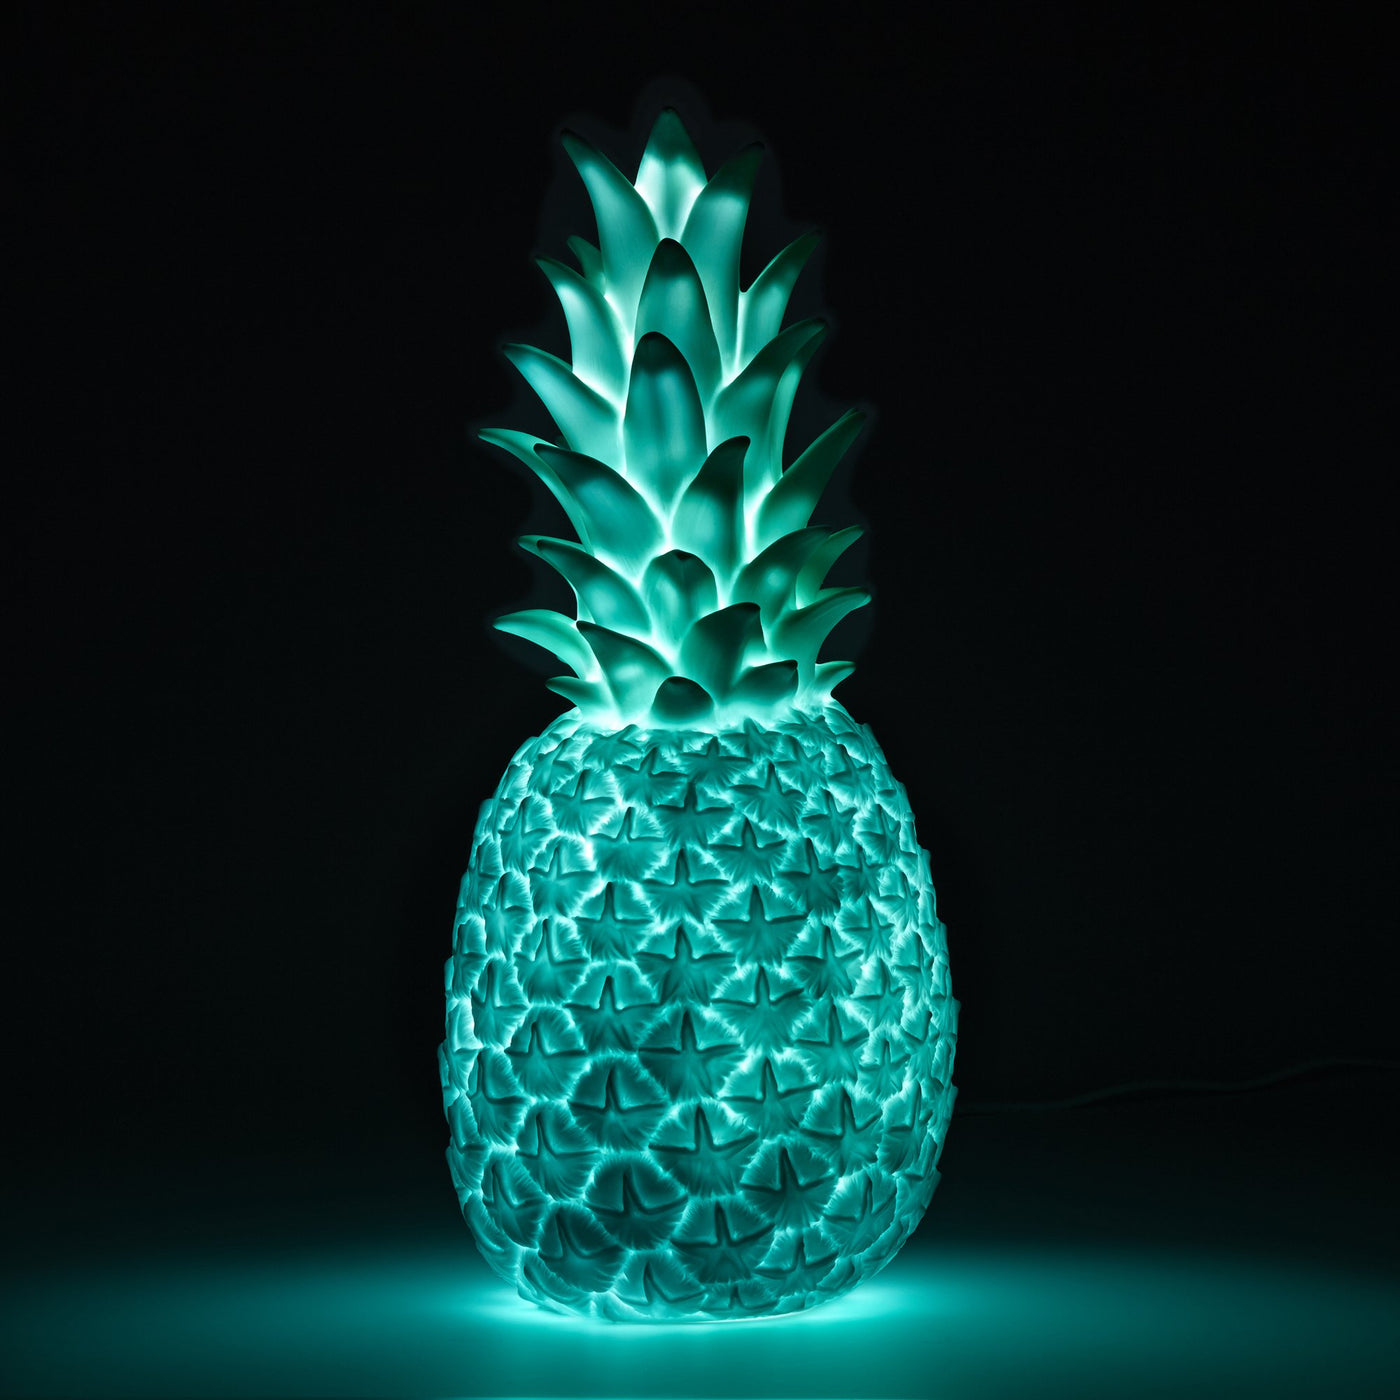 Mint Green Pineapple Lamp Goodnight Light